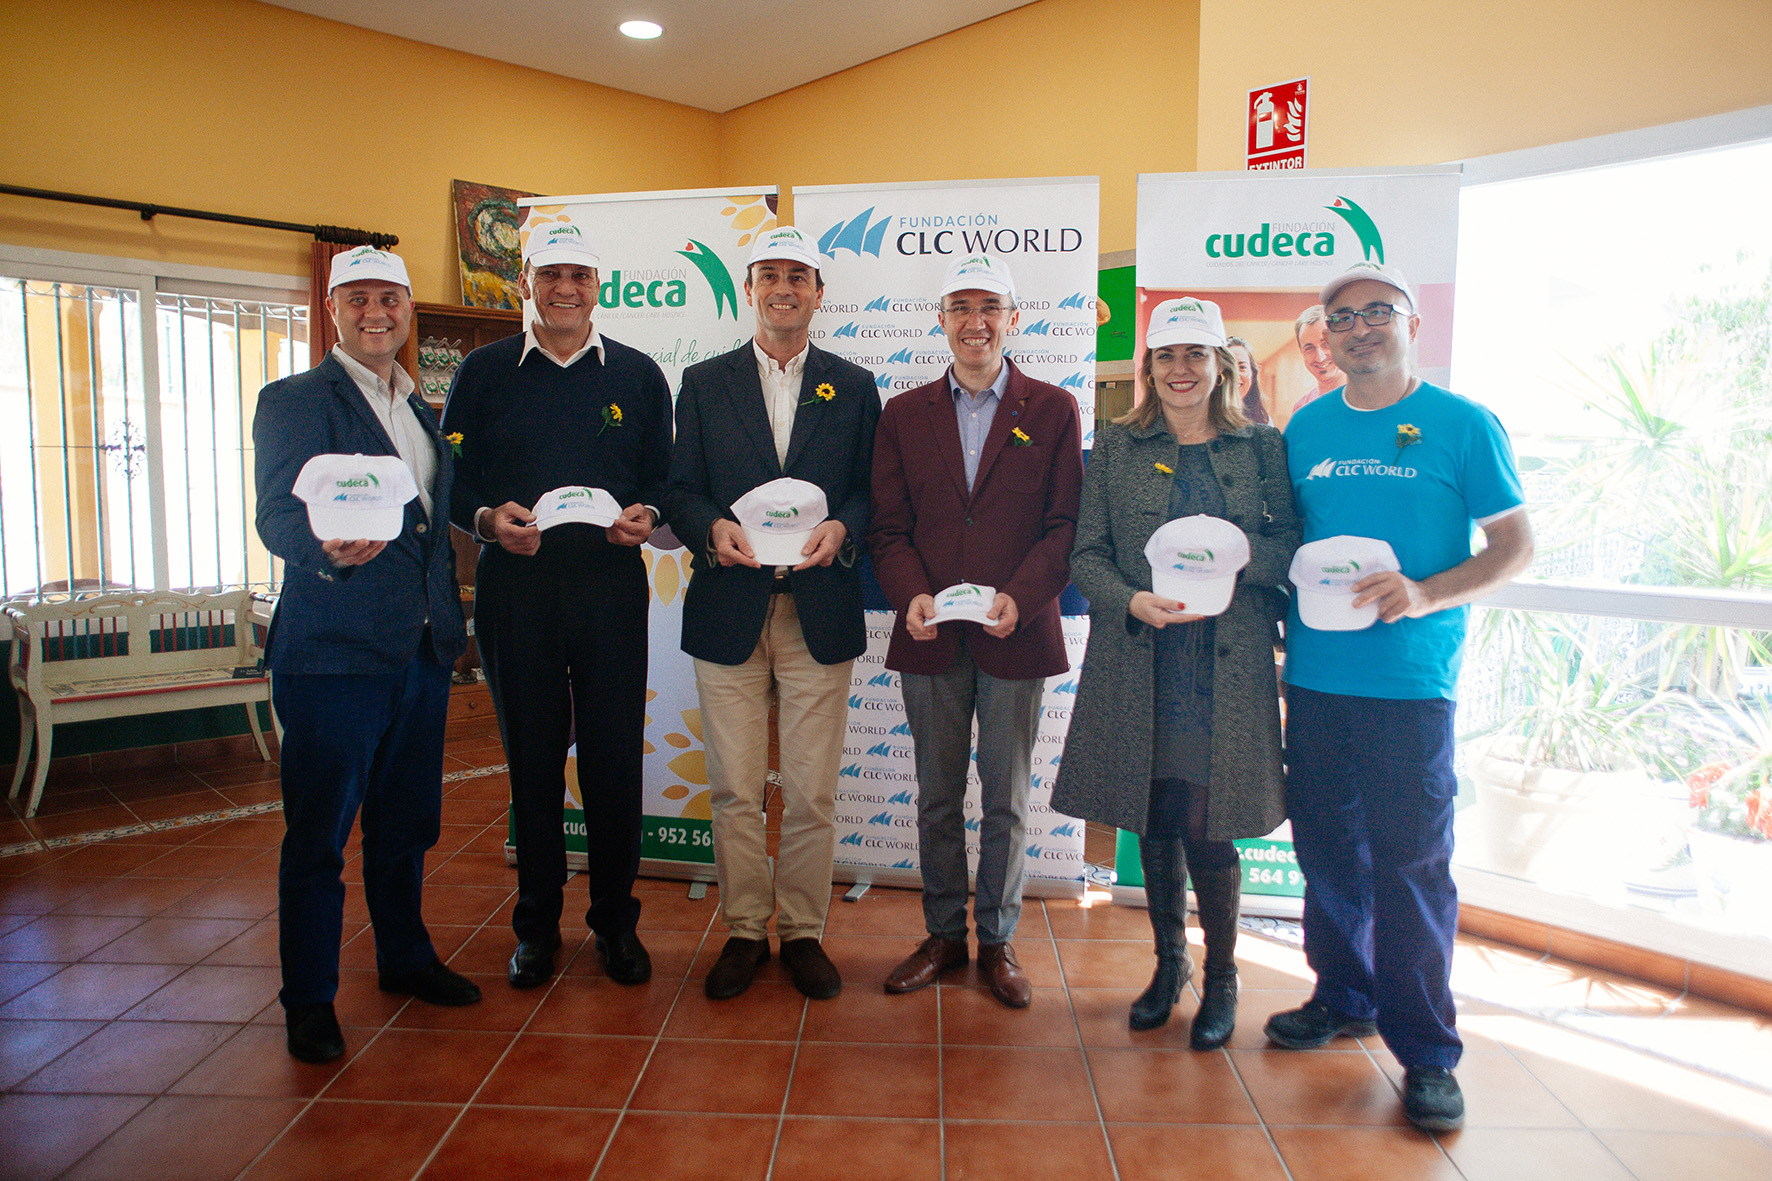 Official Caps for the CUDECA Walkathon 2019